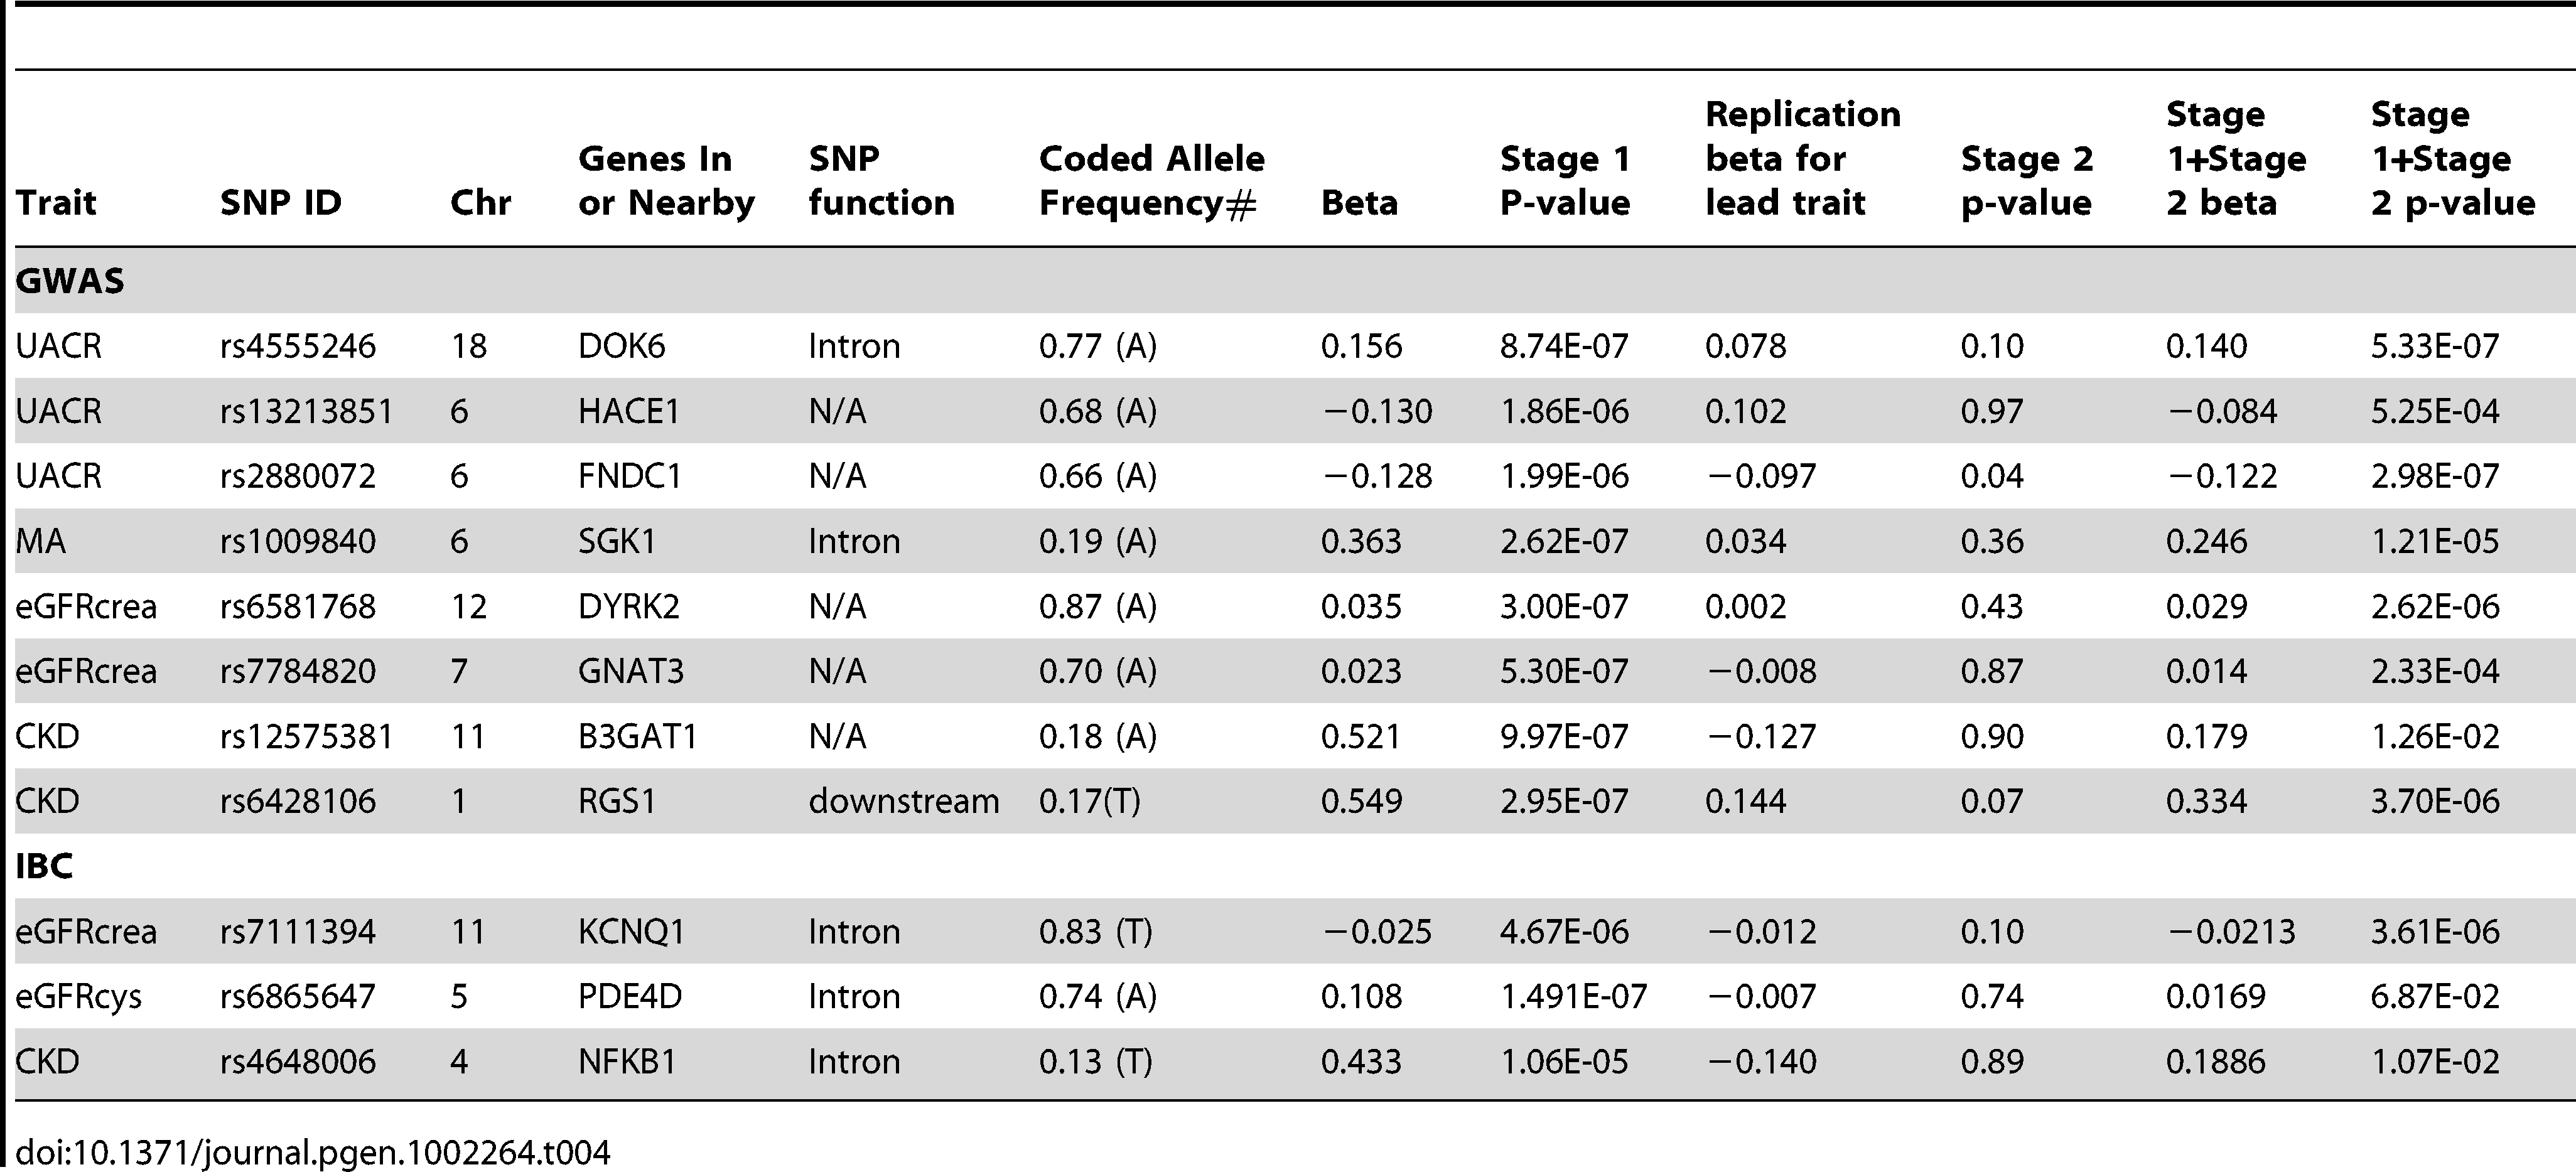 Stage 1 and Stage 2 results from loci in African Americans from GWAS (p<5.0*10E-06): SNP association with renal traits.